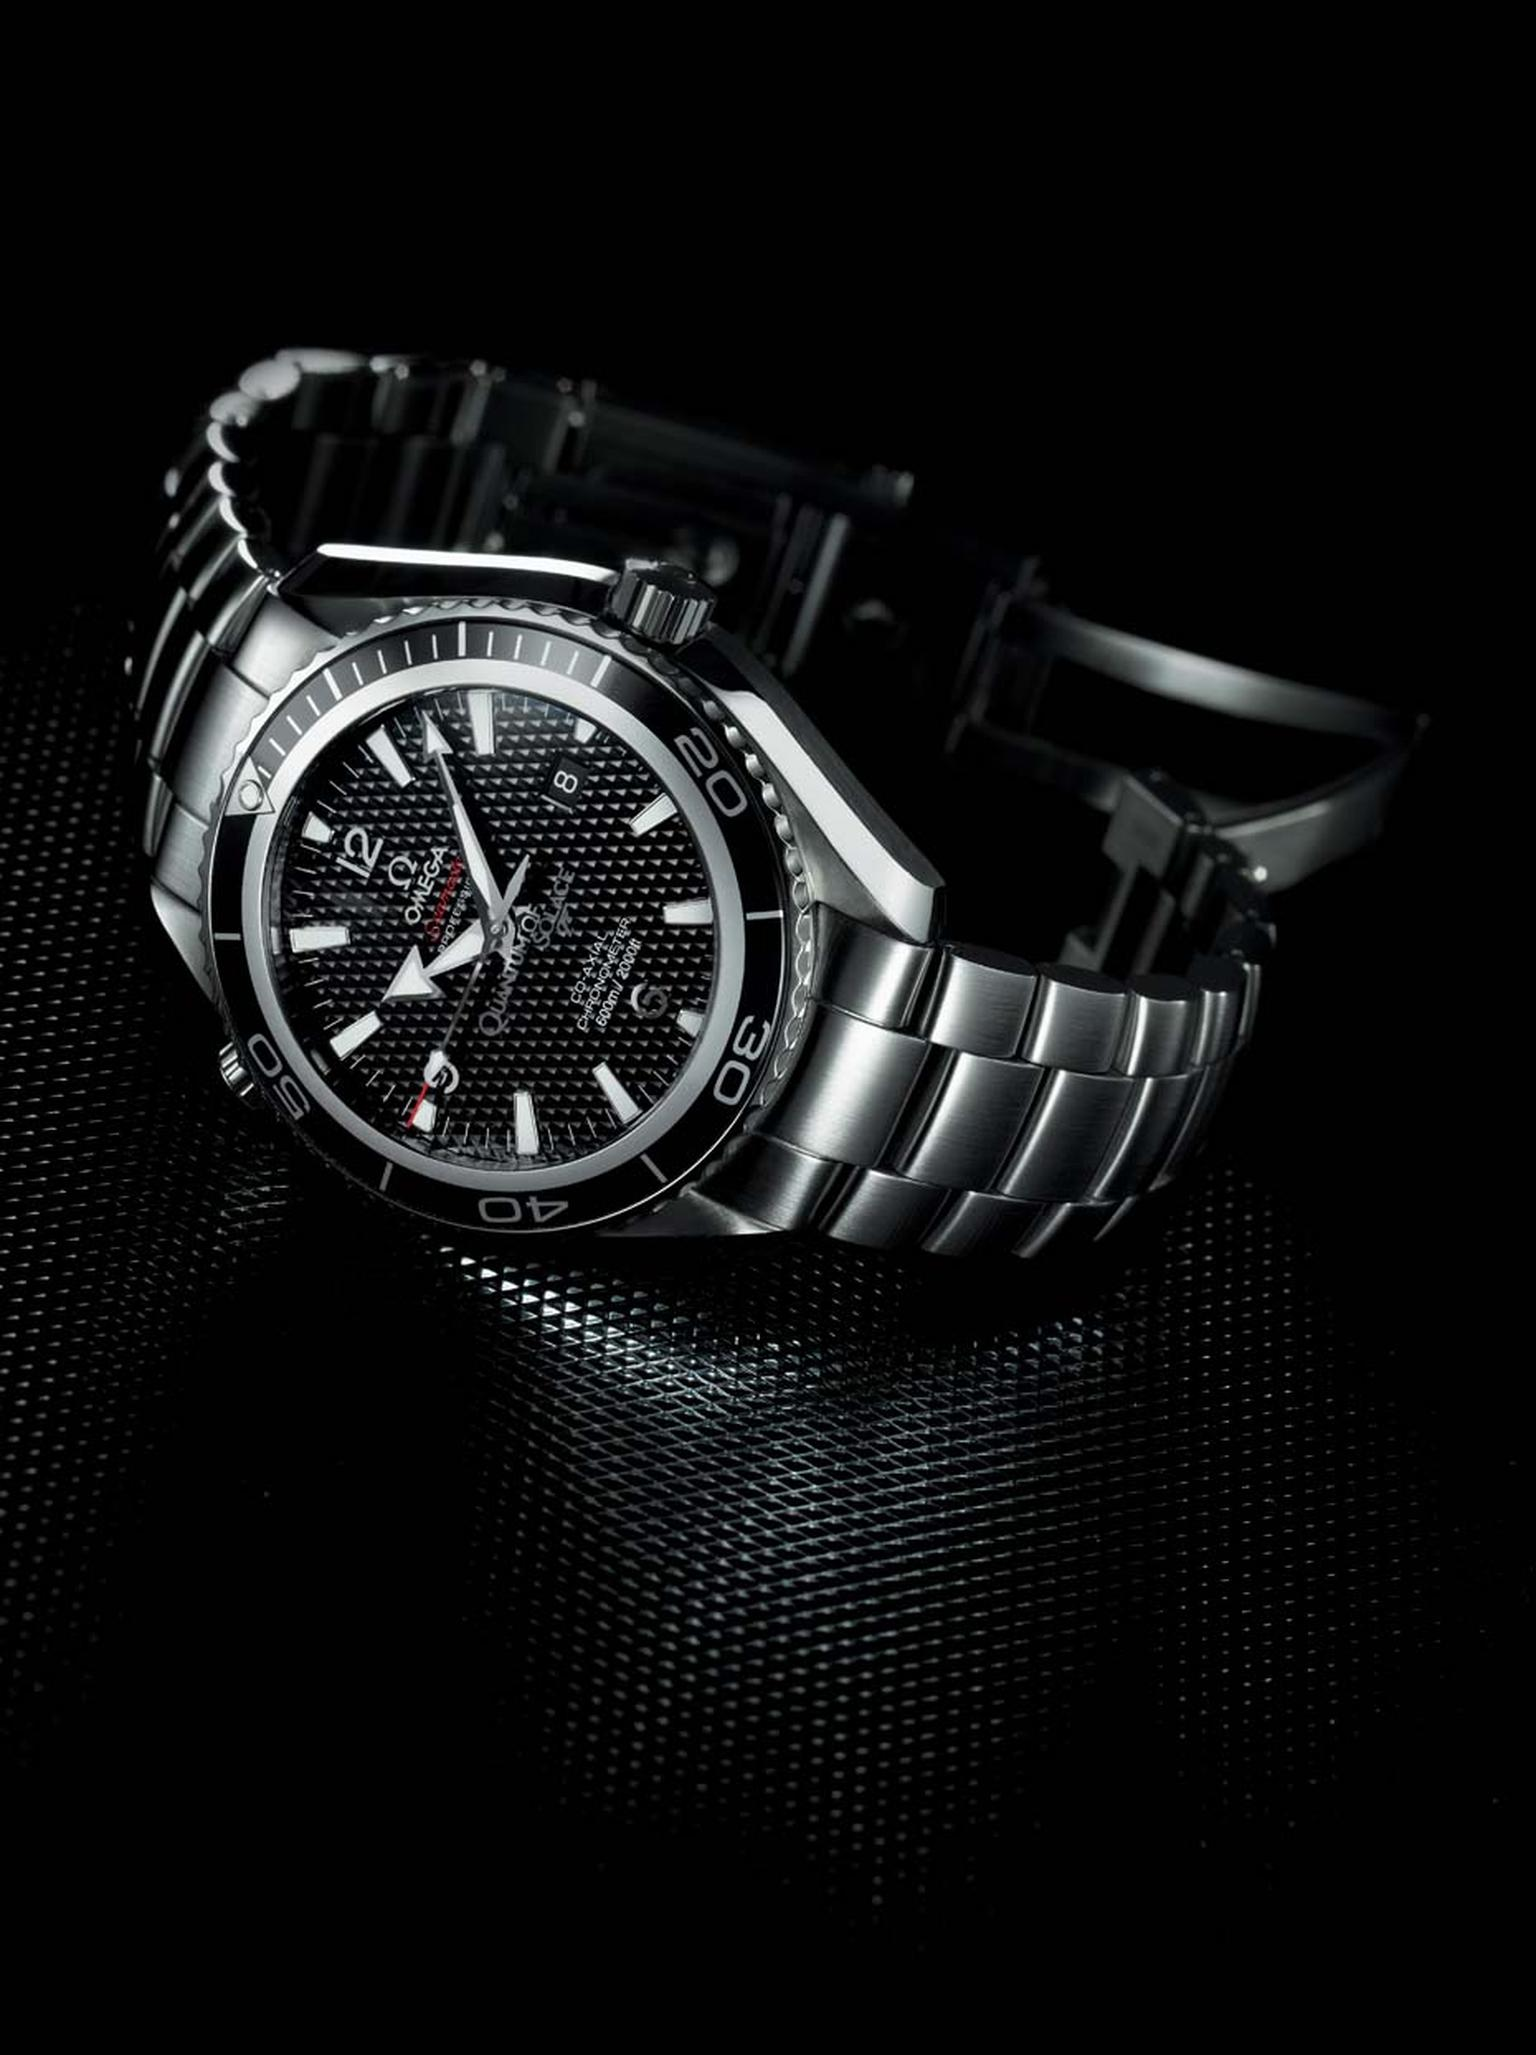 This limited edition of 5,007 pieces of the Omega Seamaster Planet Ocean 600m watch was produced to mark the release of Quantum of Solace.